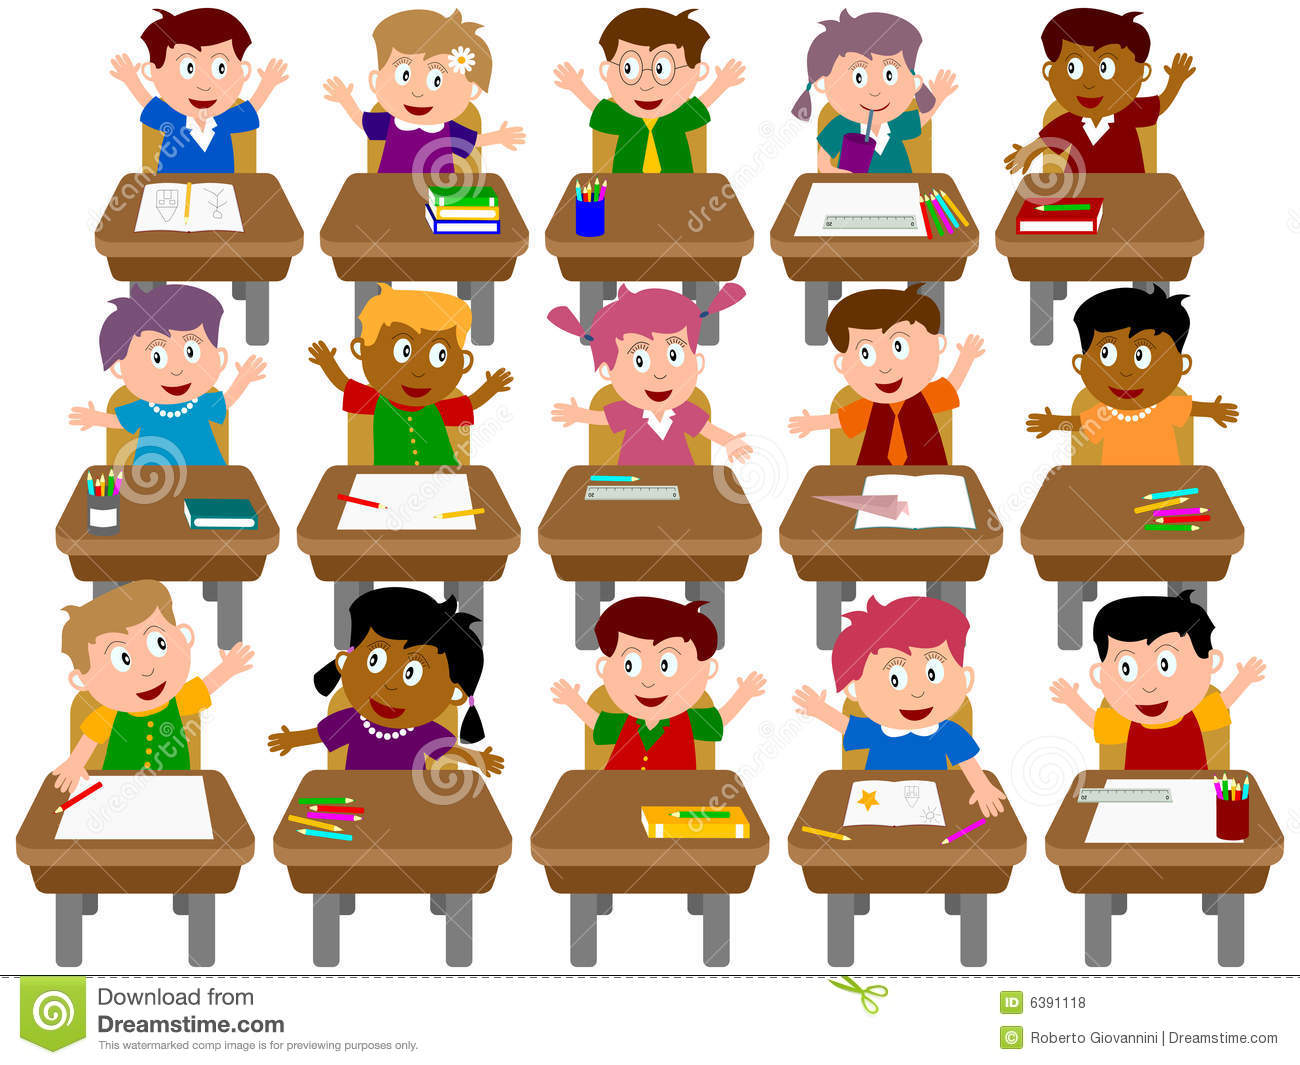 Group Of Kids In A Classroom .-Group Of Kids In A Classroom .-13